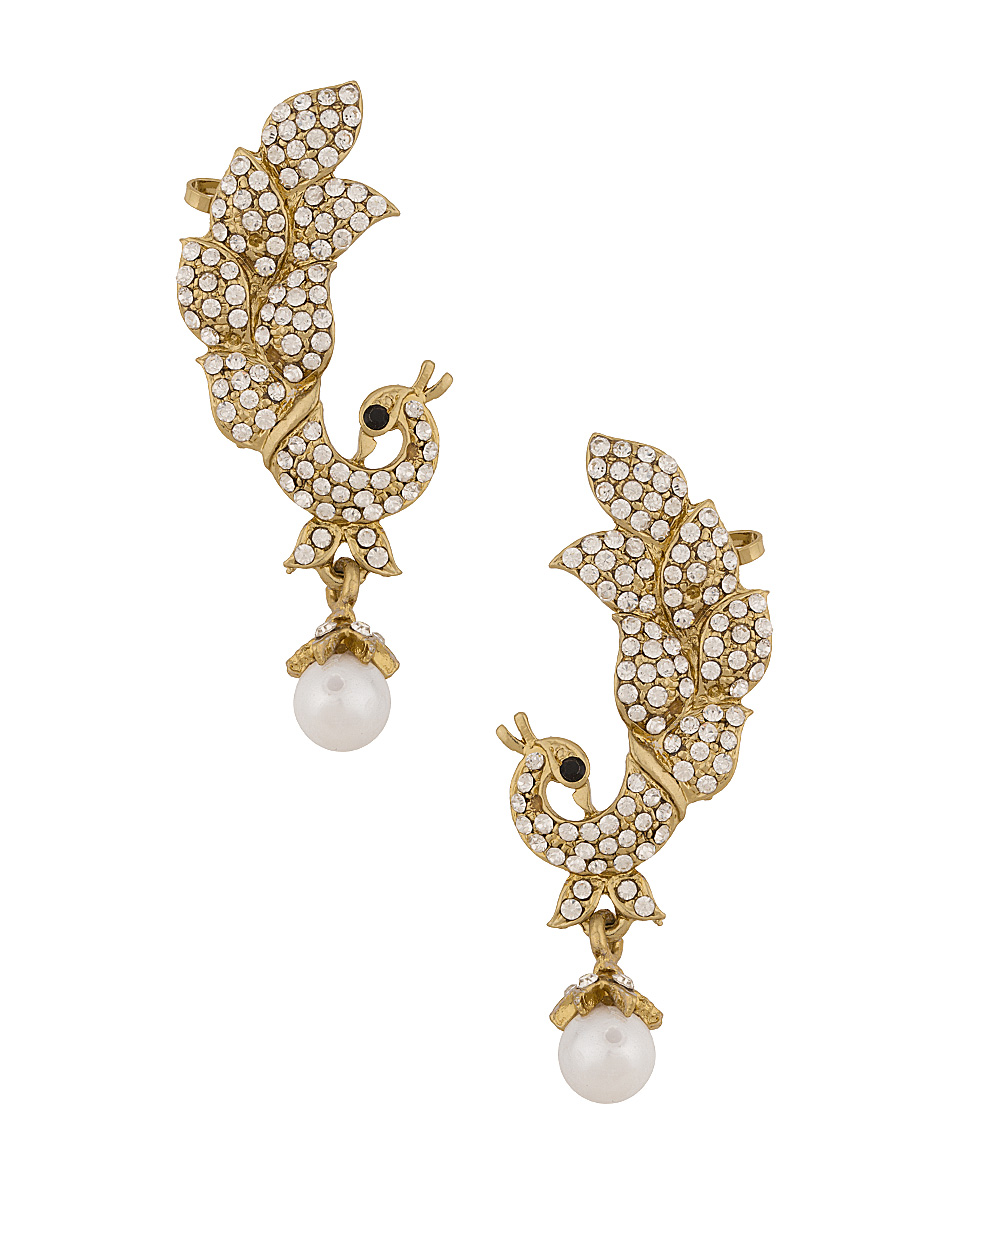 Buy Fabulous Peacock Design Ear Cuffs In Gold Tone Online India ...